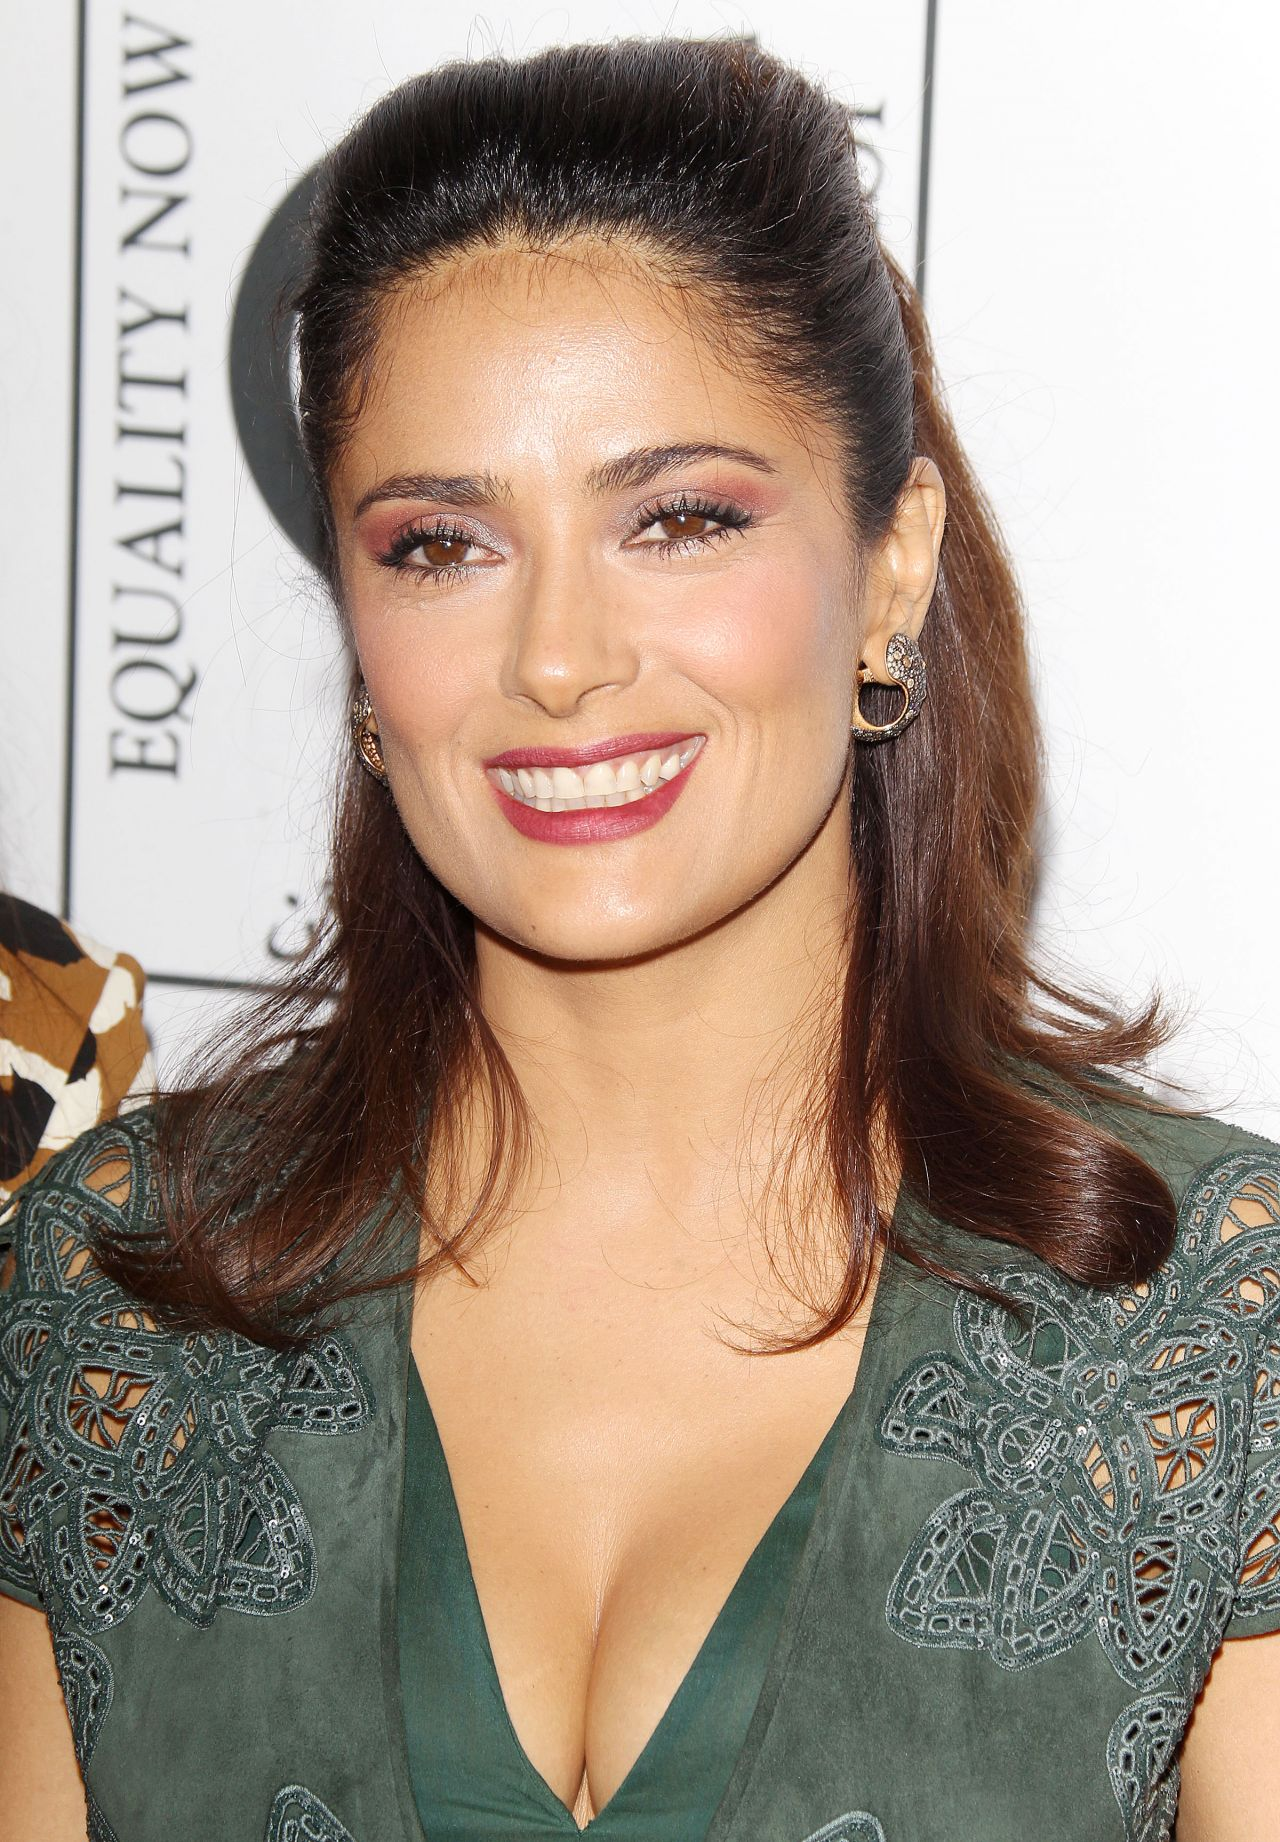 Salma Hayek - Equality Nows Make Equality Reality Event -5982